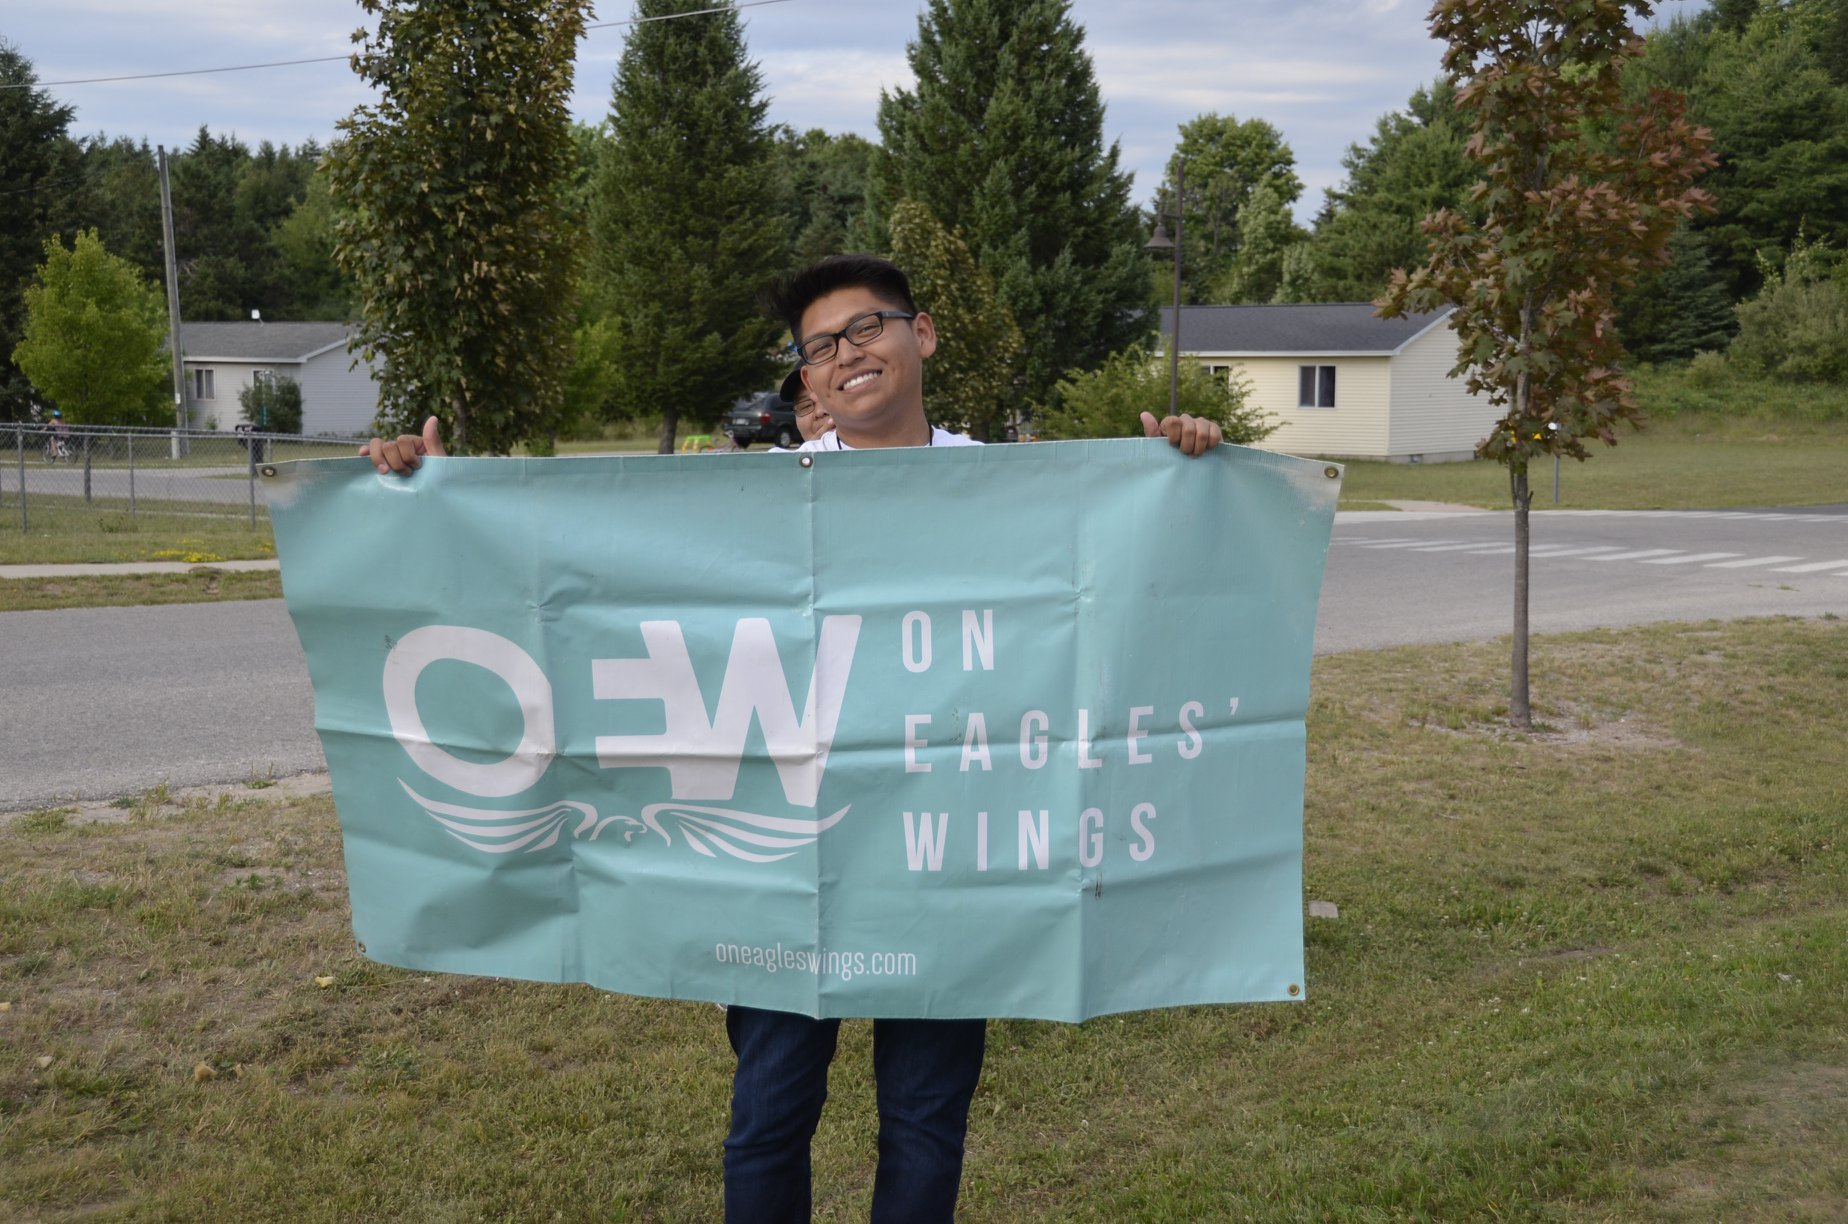 Prayer paving the way for missions among Native American young people